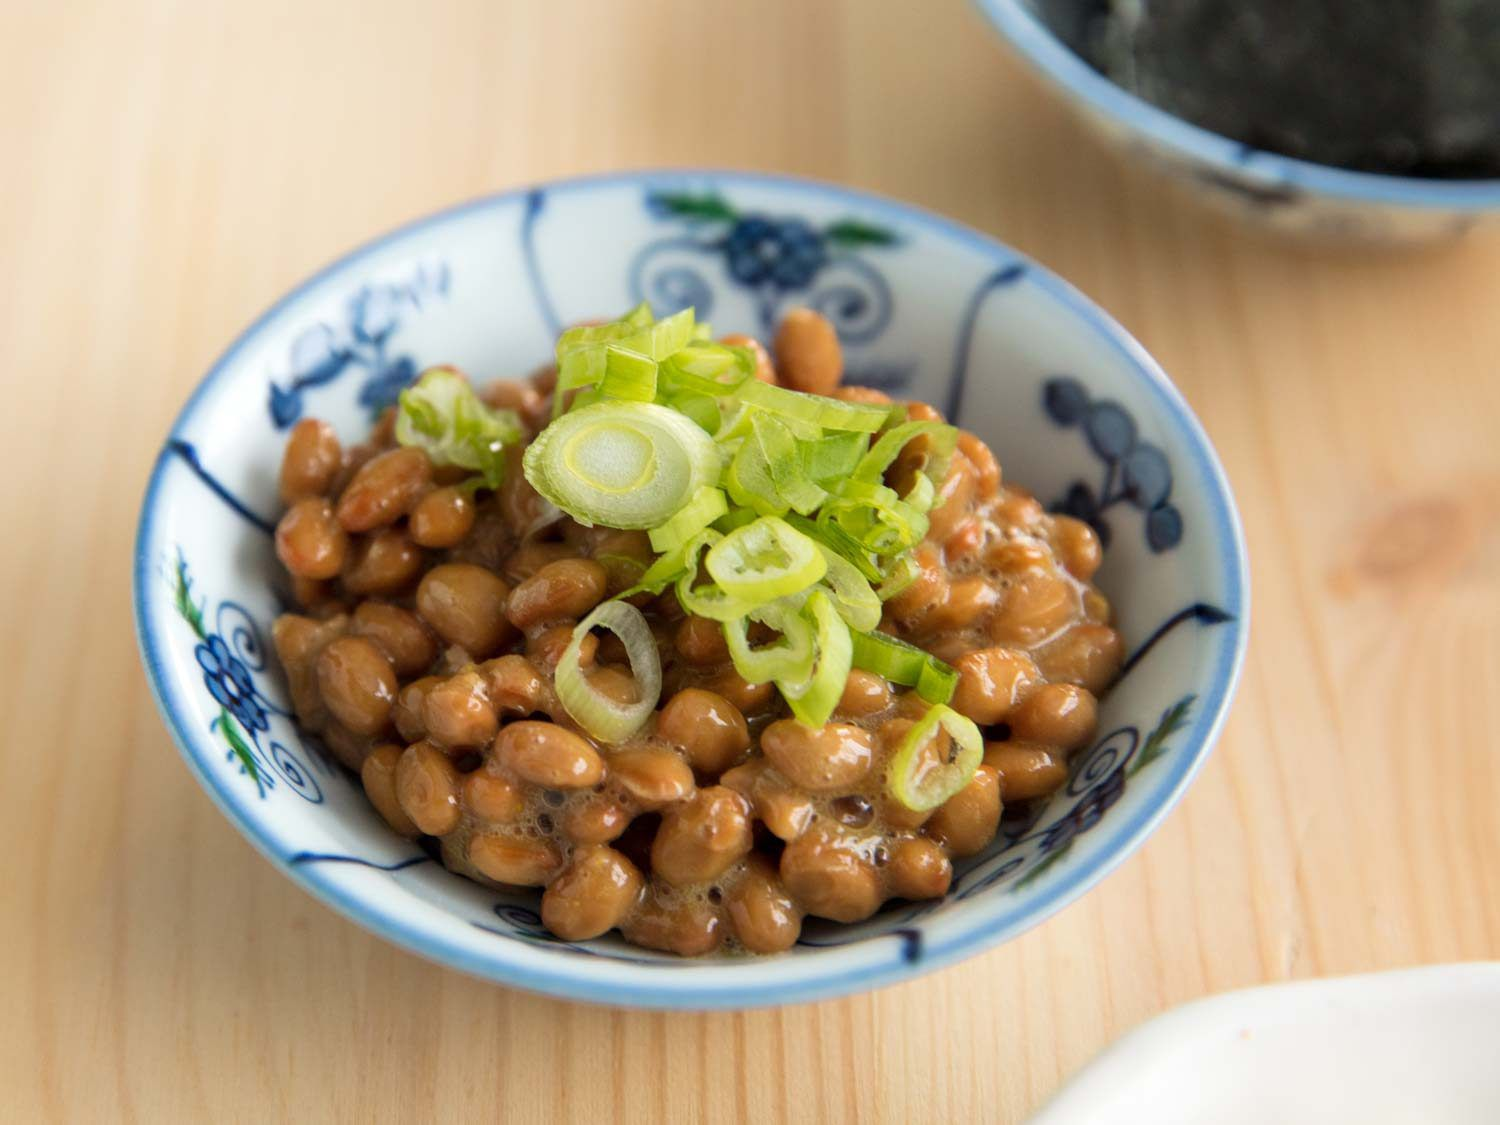 Natto in a ceramic bowl, topped with sliced scallions